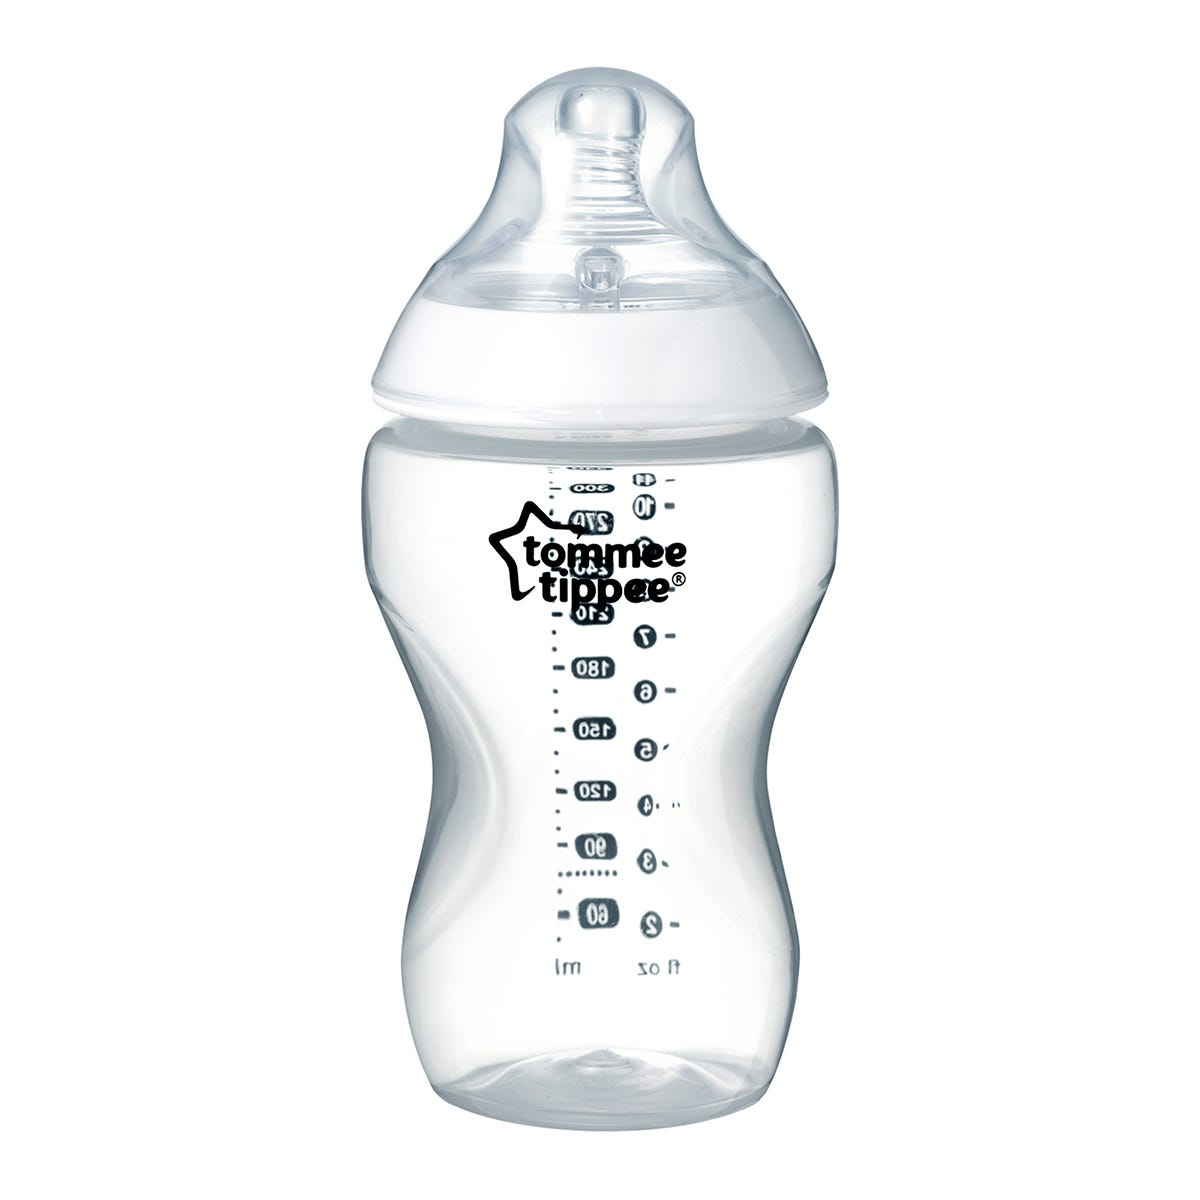 1-x-clear-9-oz-closer-to-nature-baby-bottles-with-tommee-tippee-logo